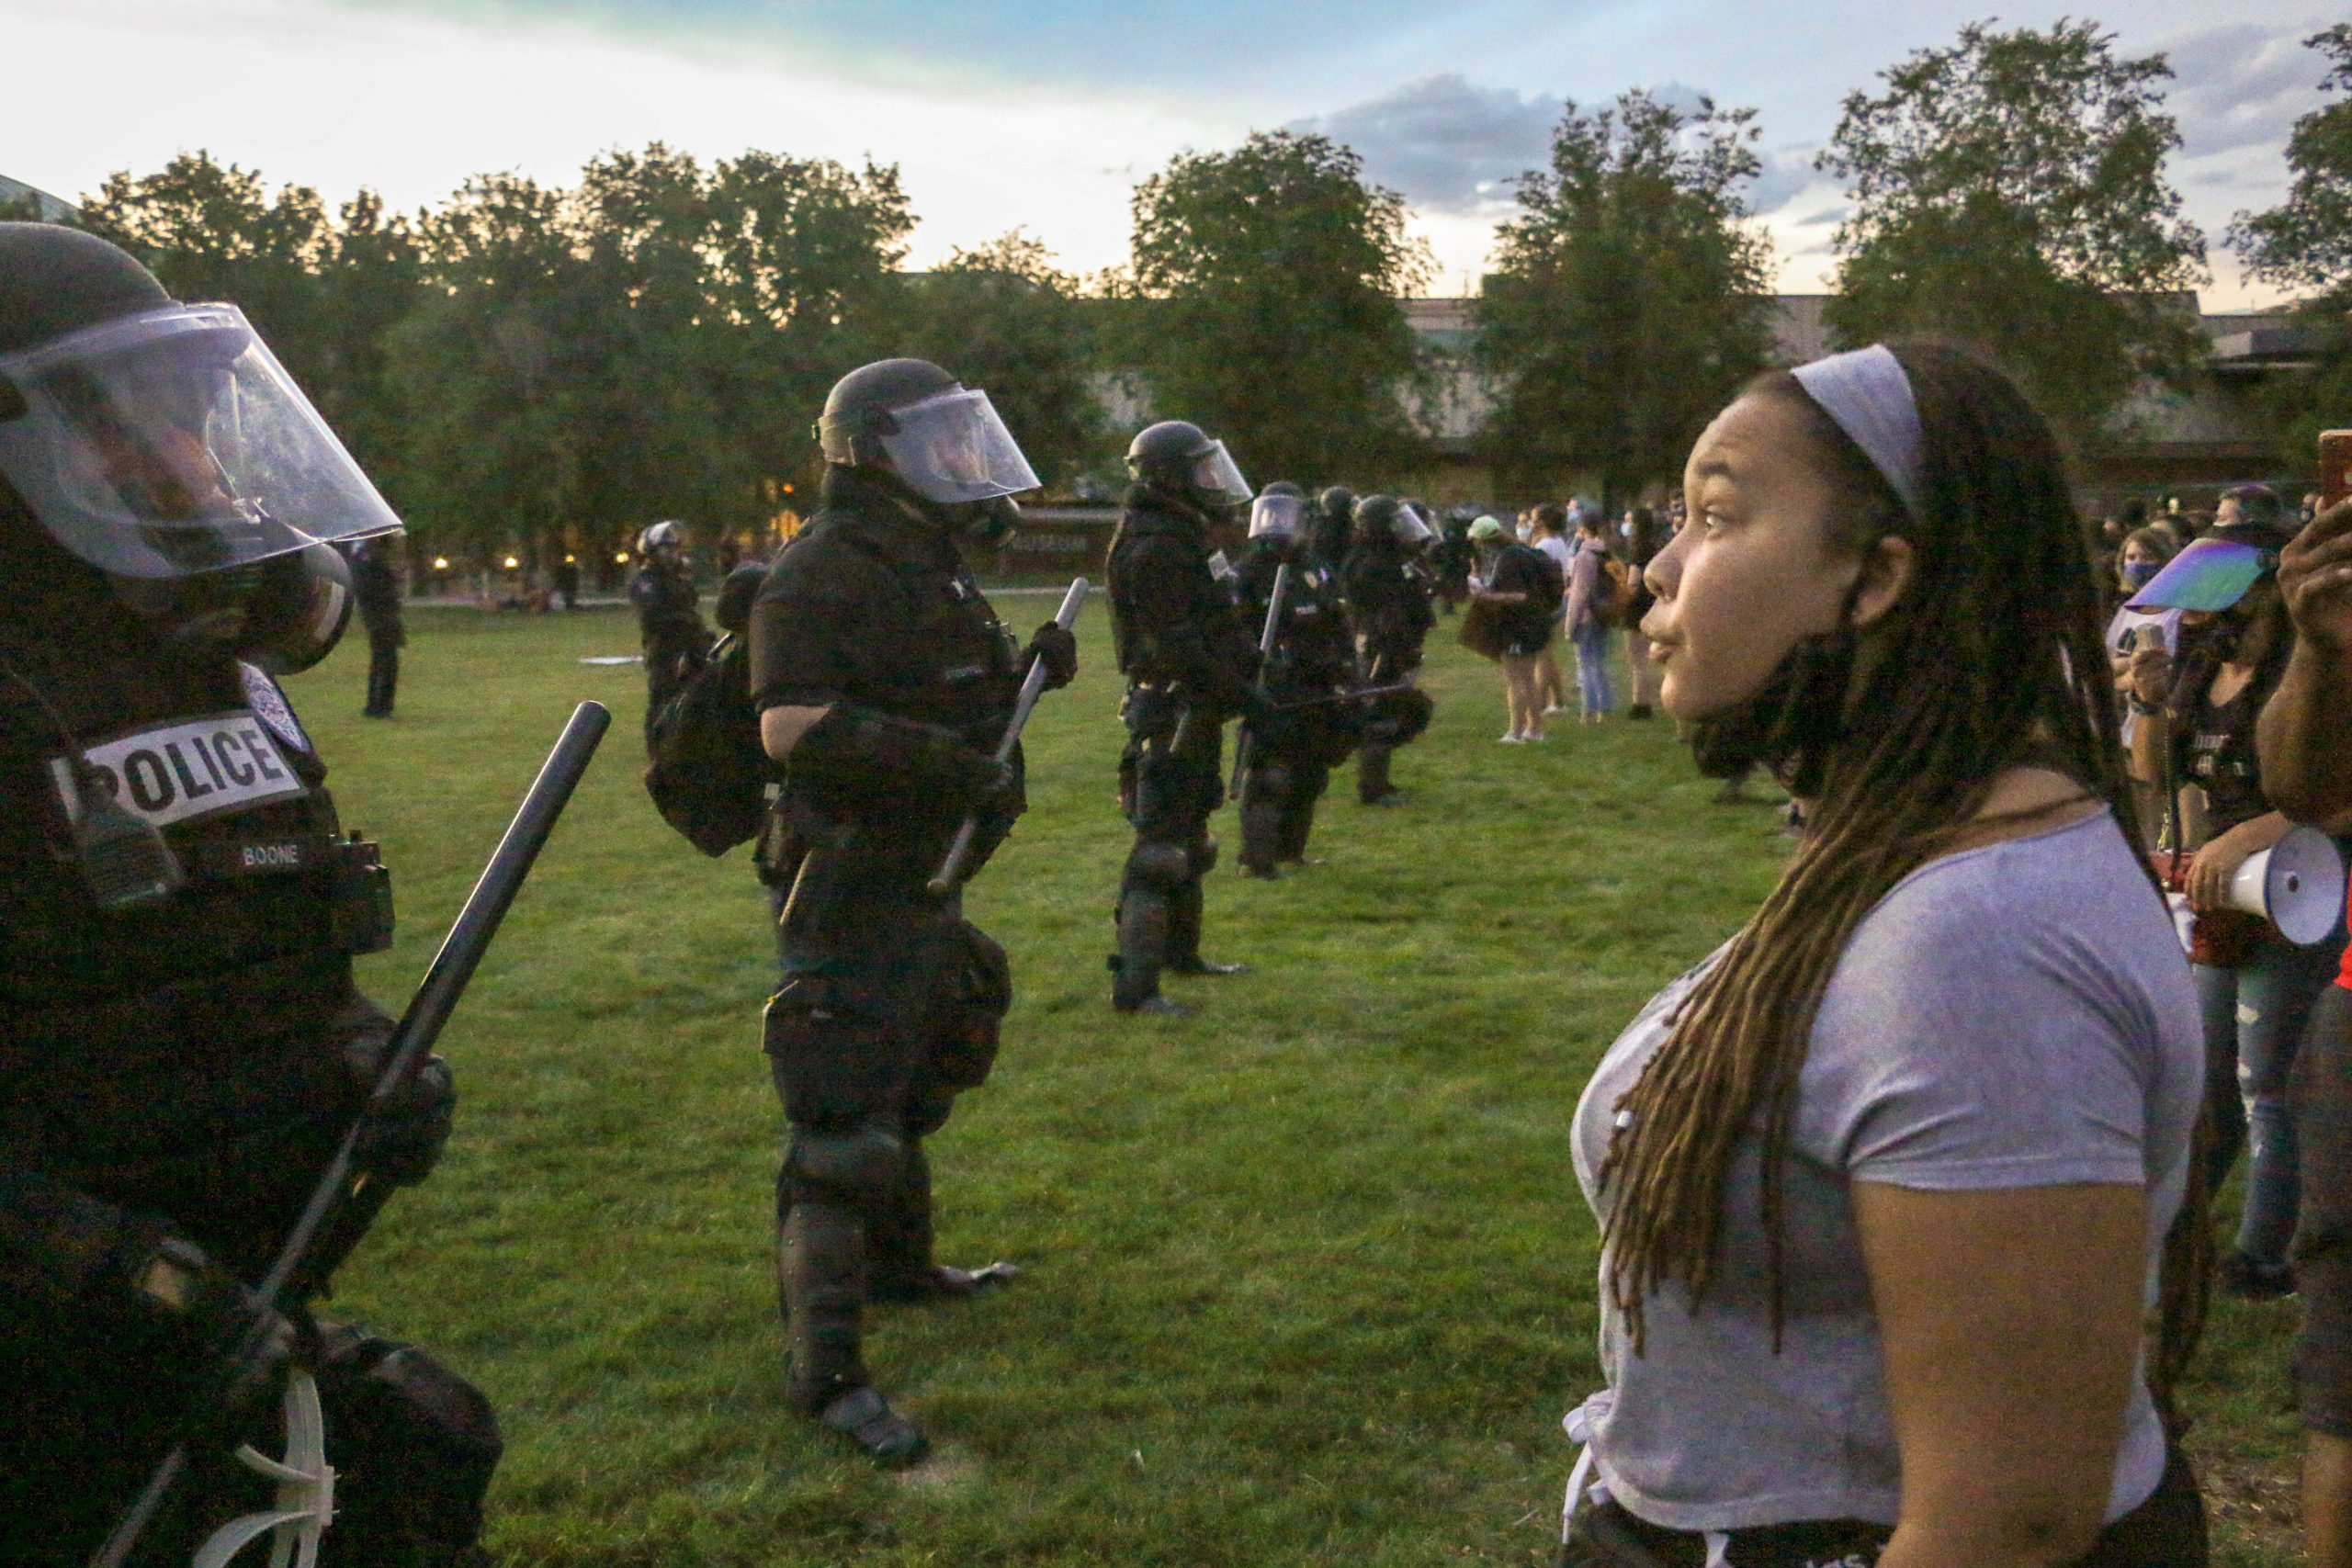 Aurora law enforcement is a danger to the people